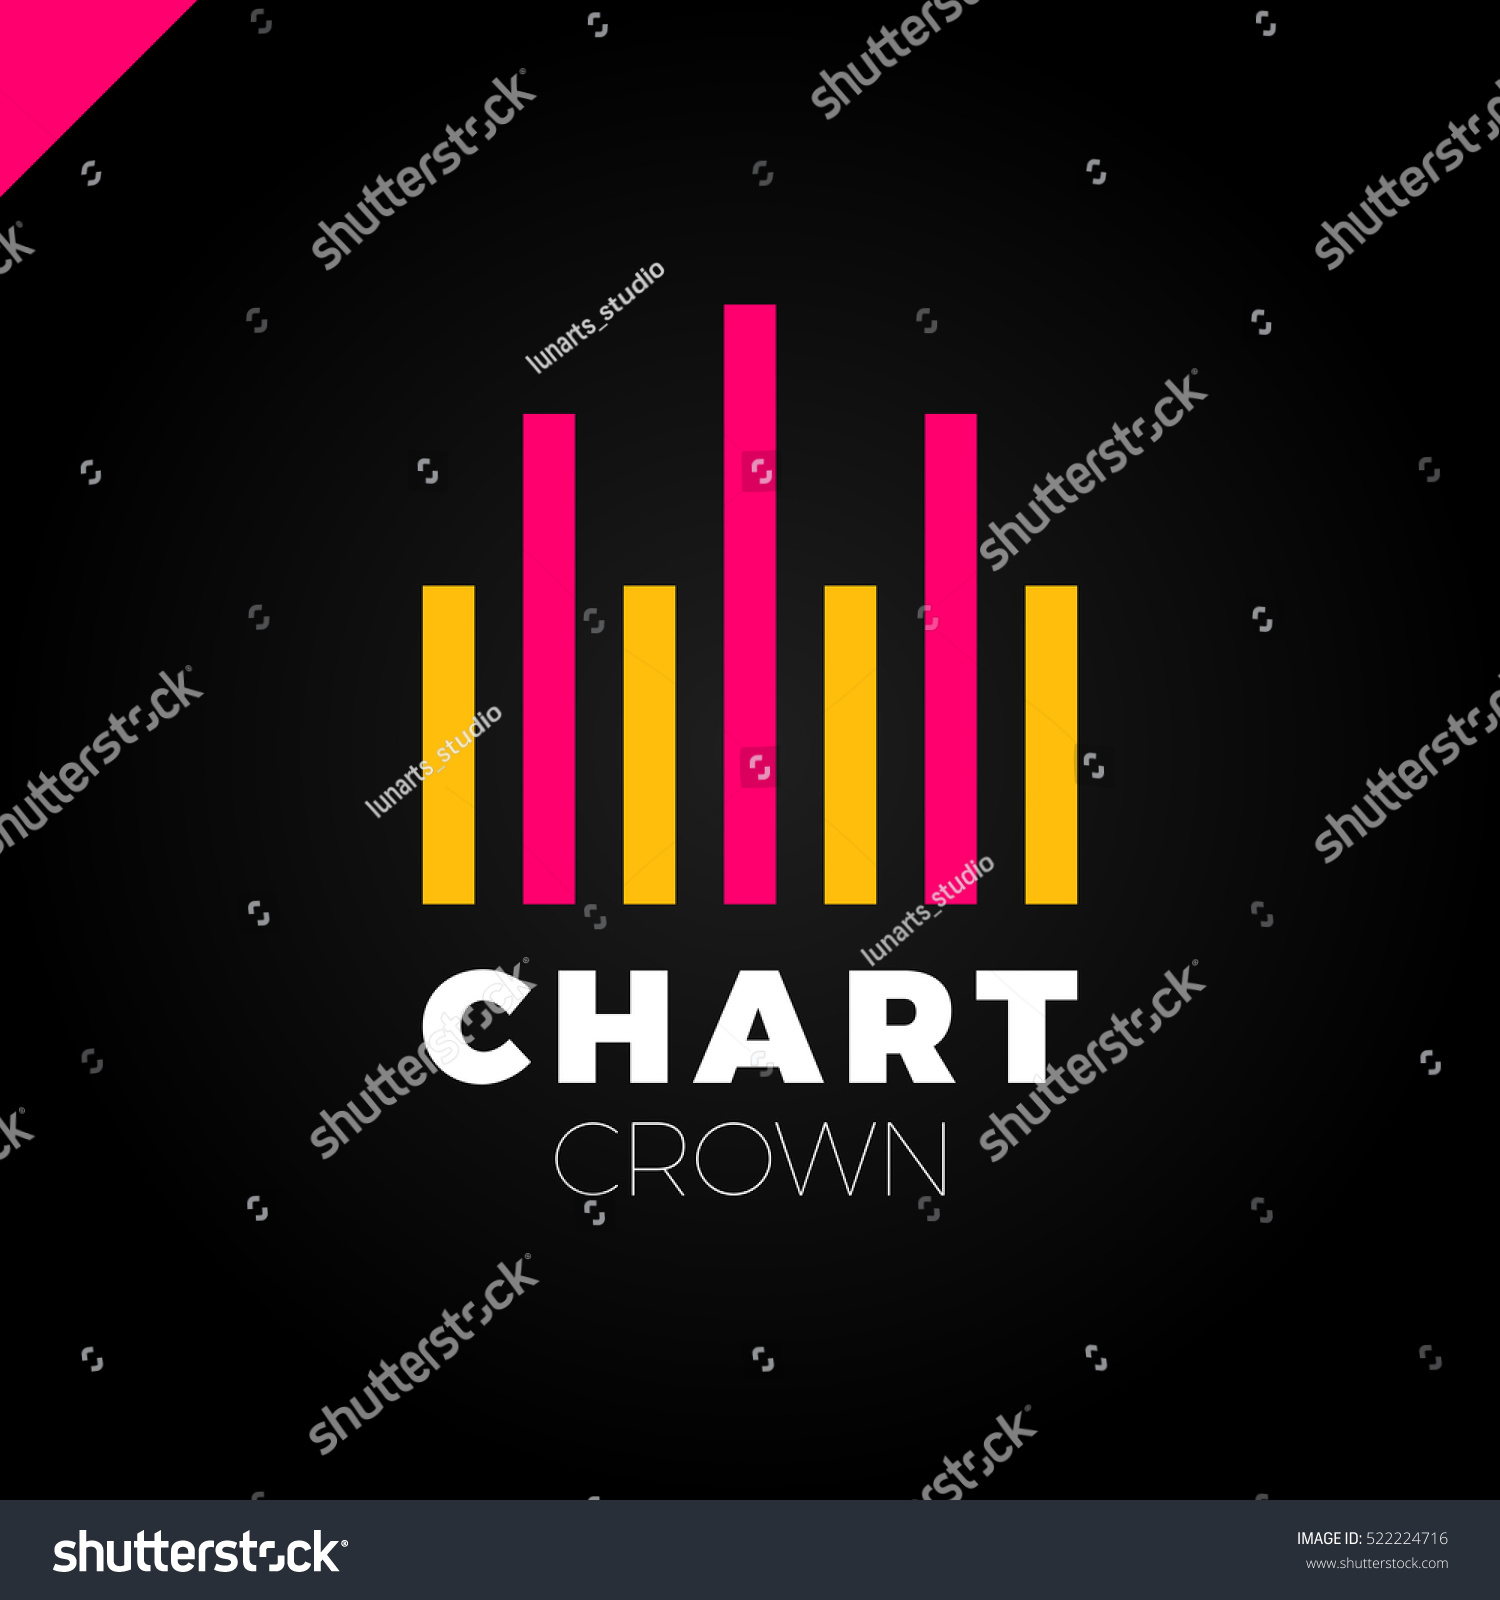 Chart crown logo infographic rate chart stock vector 522224716 chart crown logo infographic rate chart or rate icon logotype growing graph simbol nvjuhfo Images